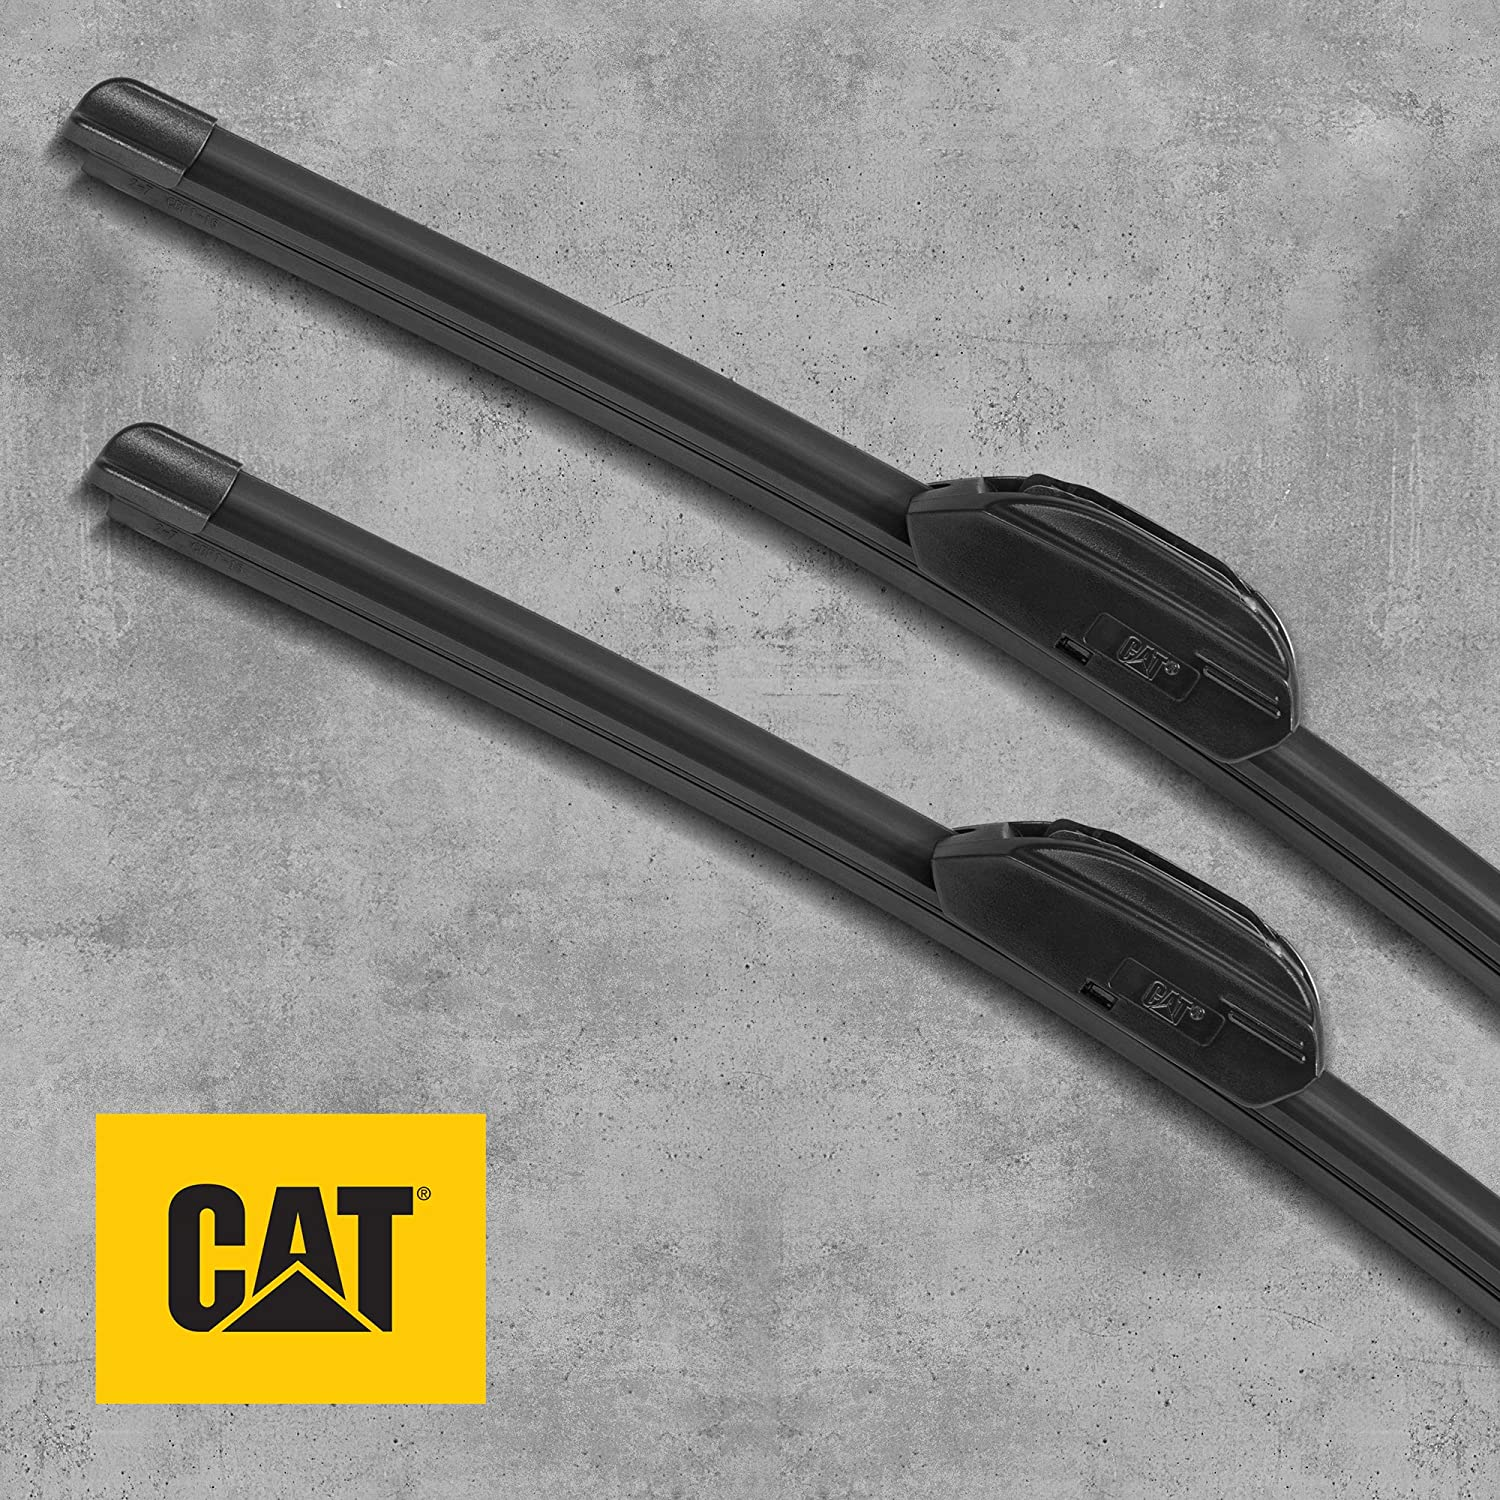 Caterpillar Clarity Premium Performance All Season Replacement Windshield Wiper Blades for Car Truck Van SUV 22 + 22 - Perfect Fit for 2008-2020 Lincoln Navigator